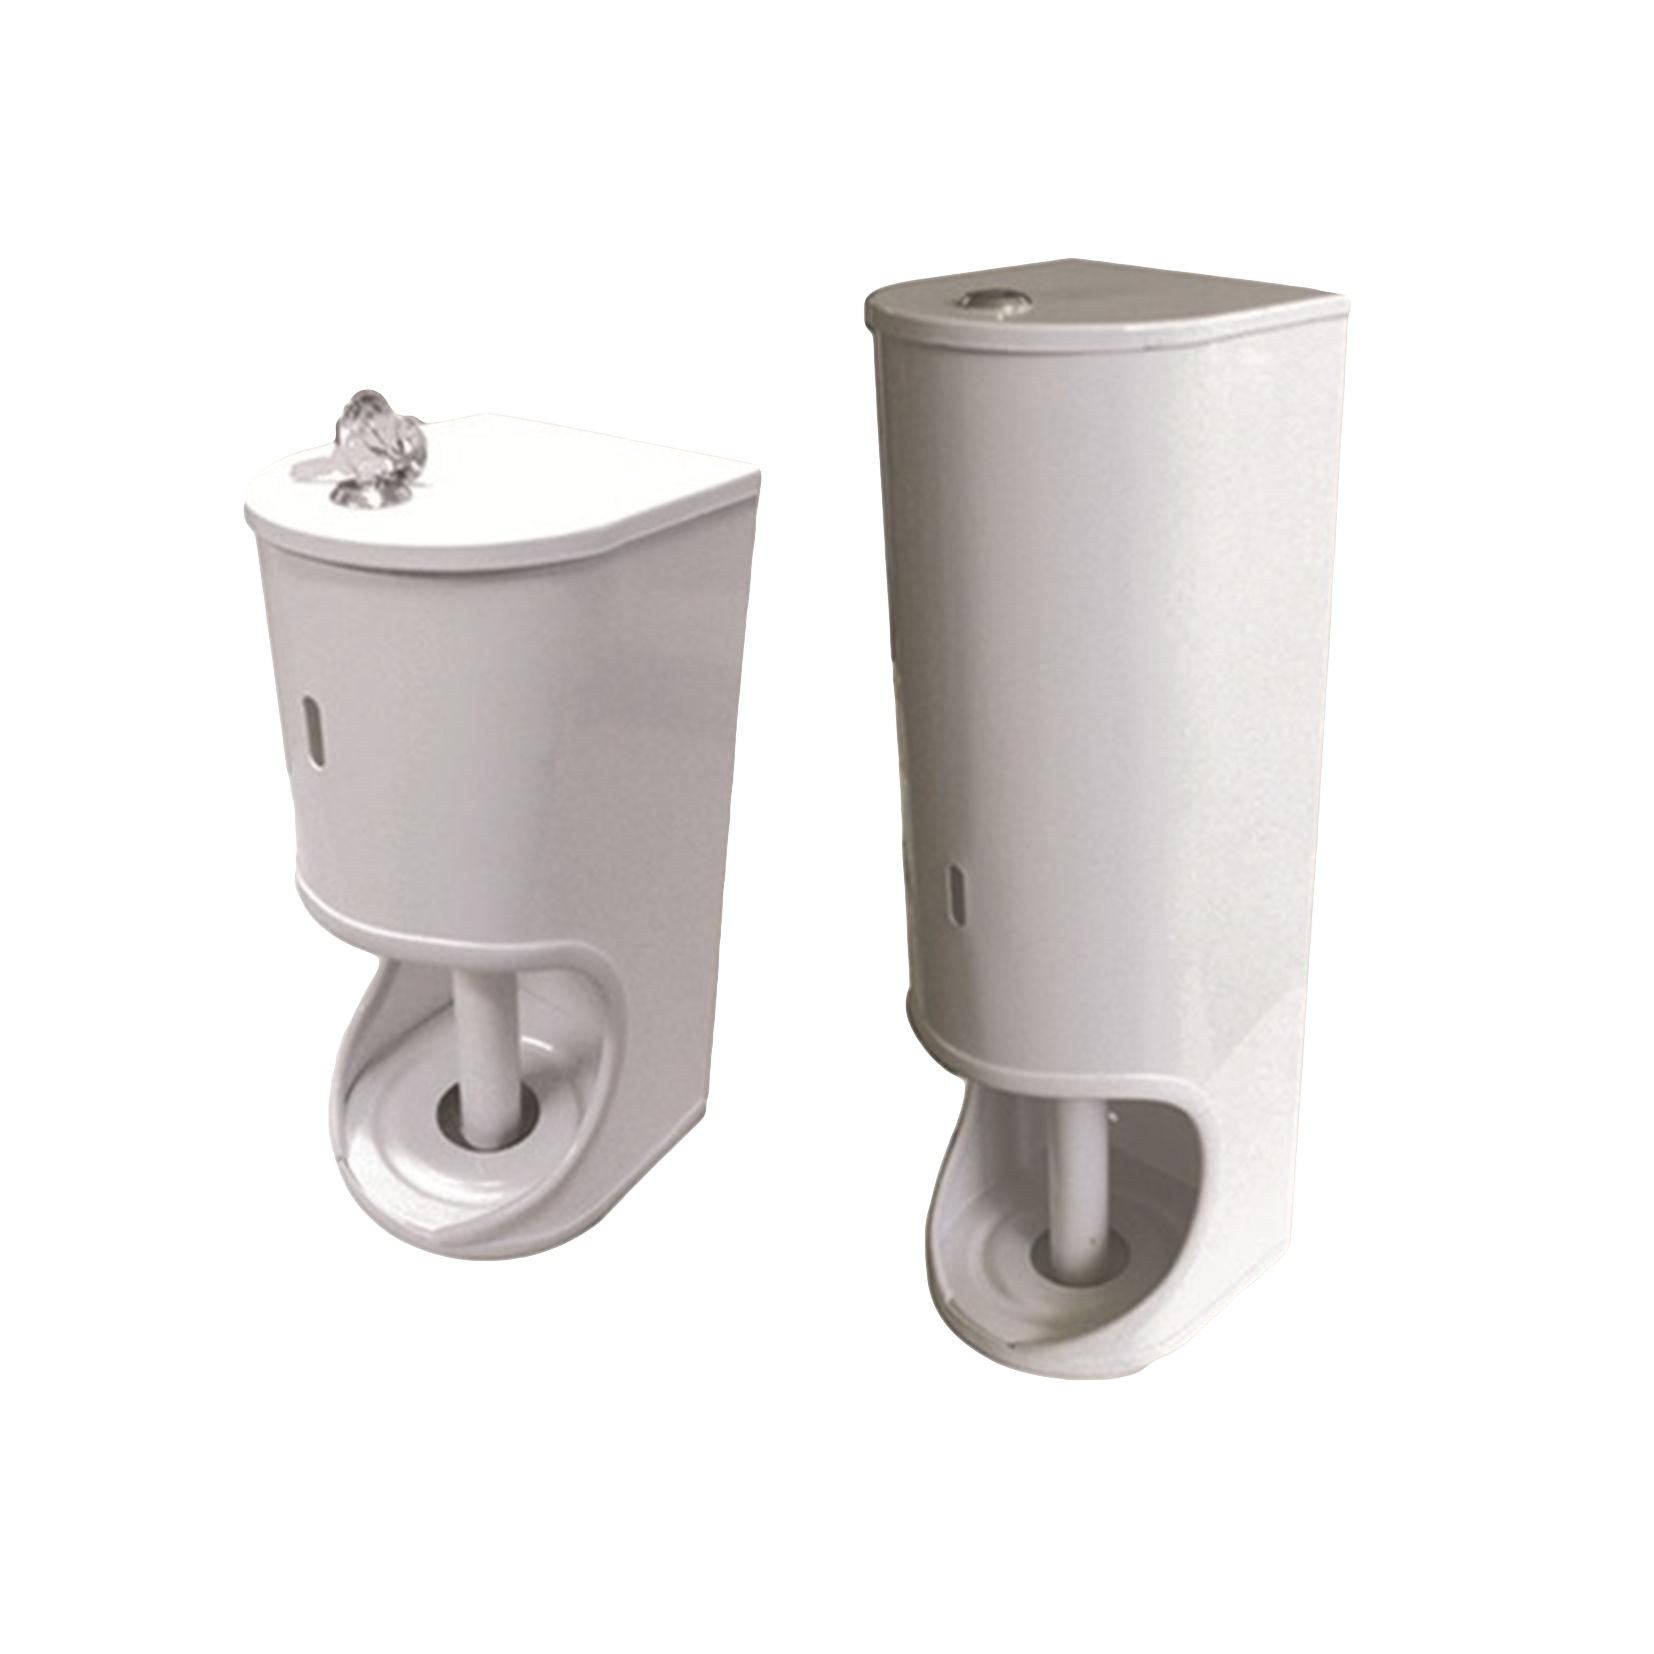 Hectoserve Toilet roll dispenser white